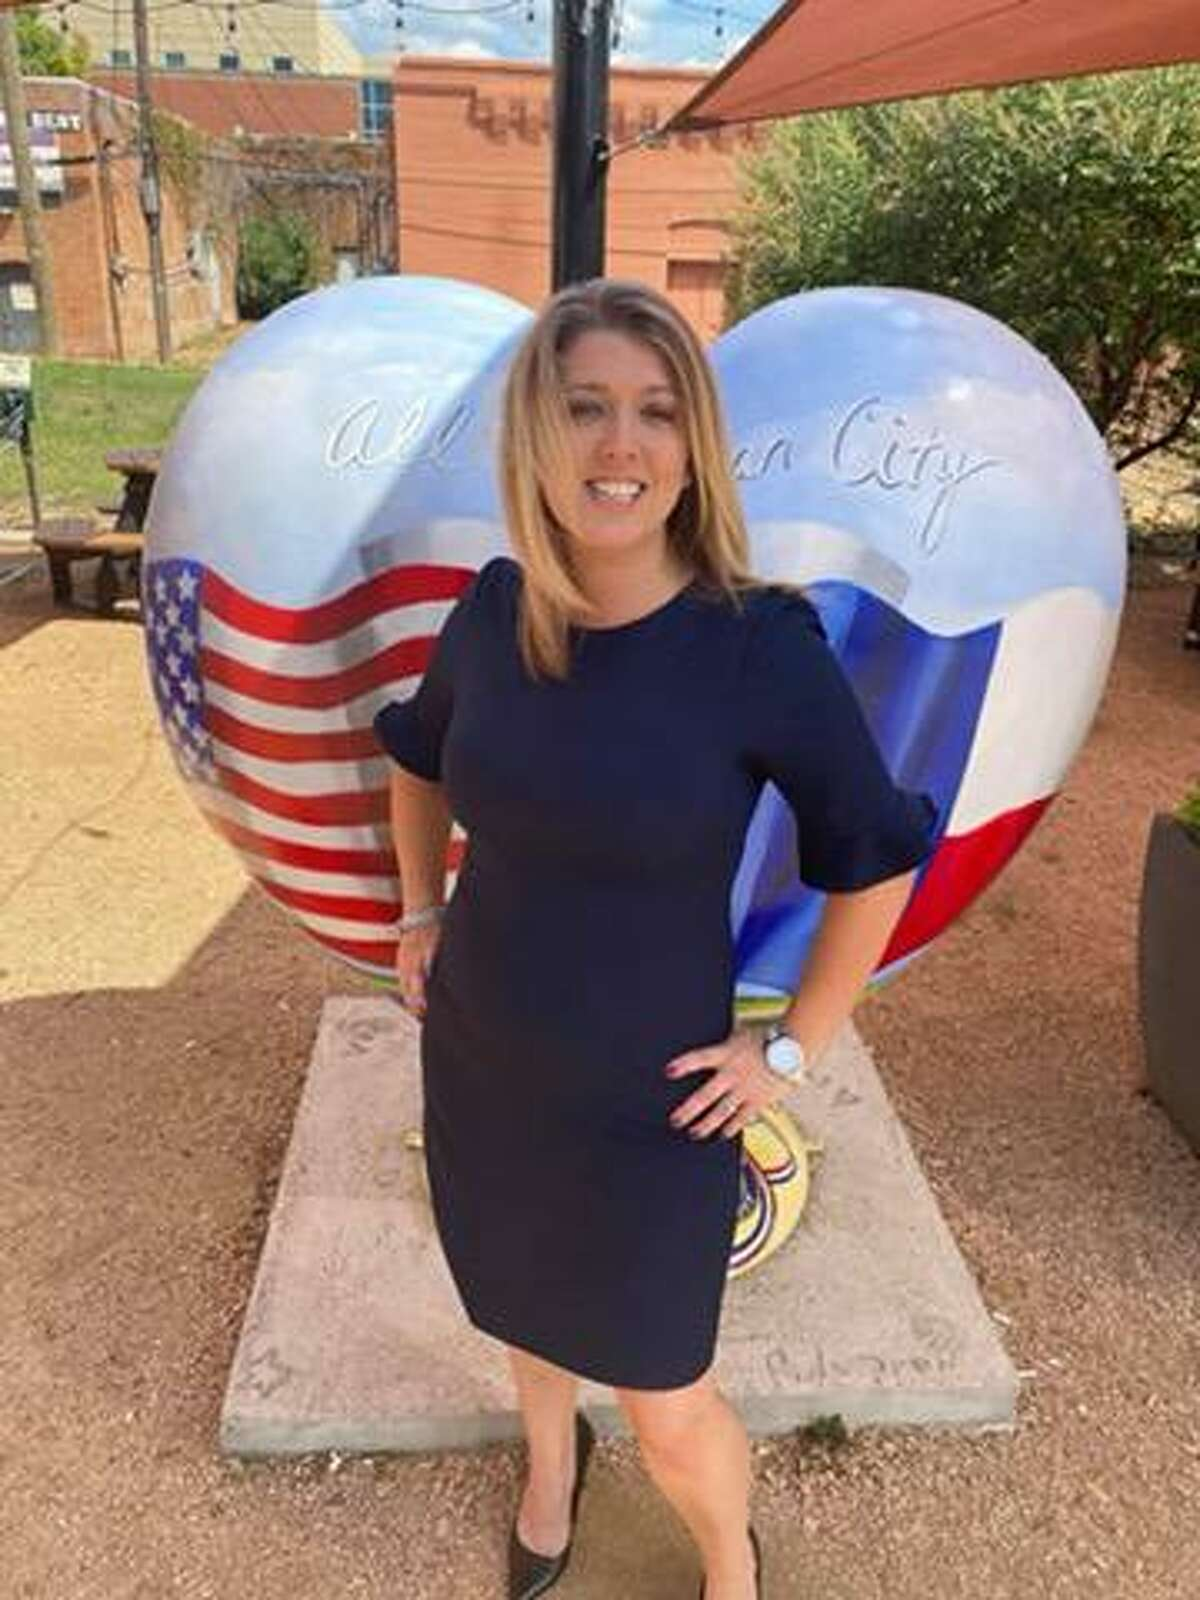 Republican Sandra Whitten is running again for Congress after going head-to-head with Democrat and eight-term representative Henry Cuellar in 2020.